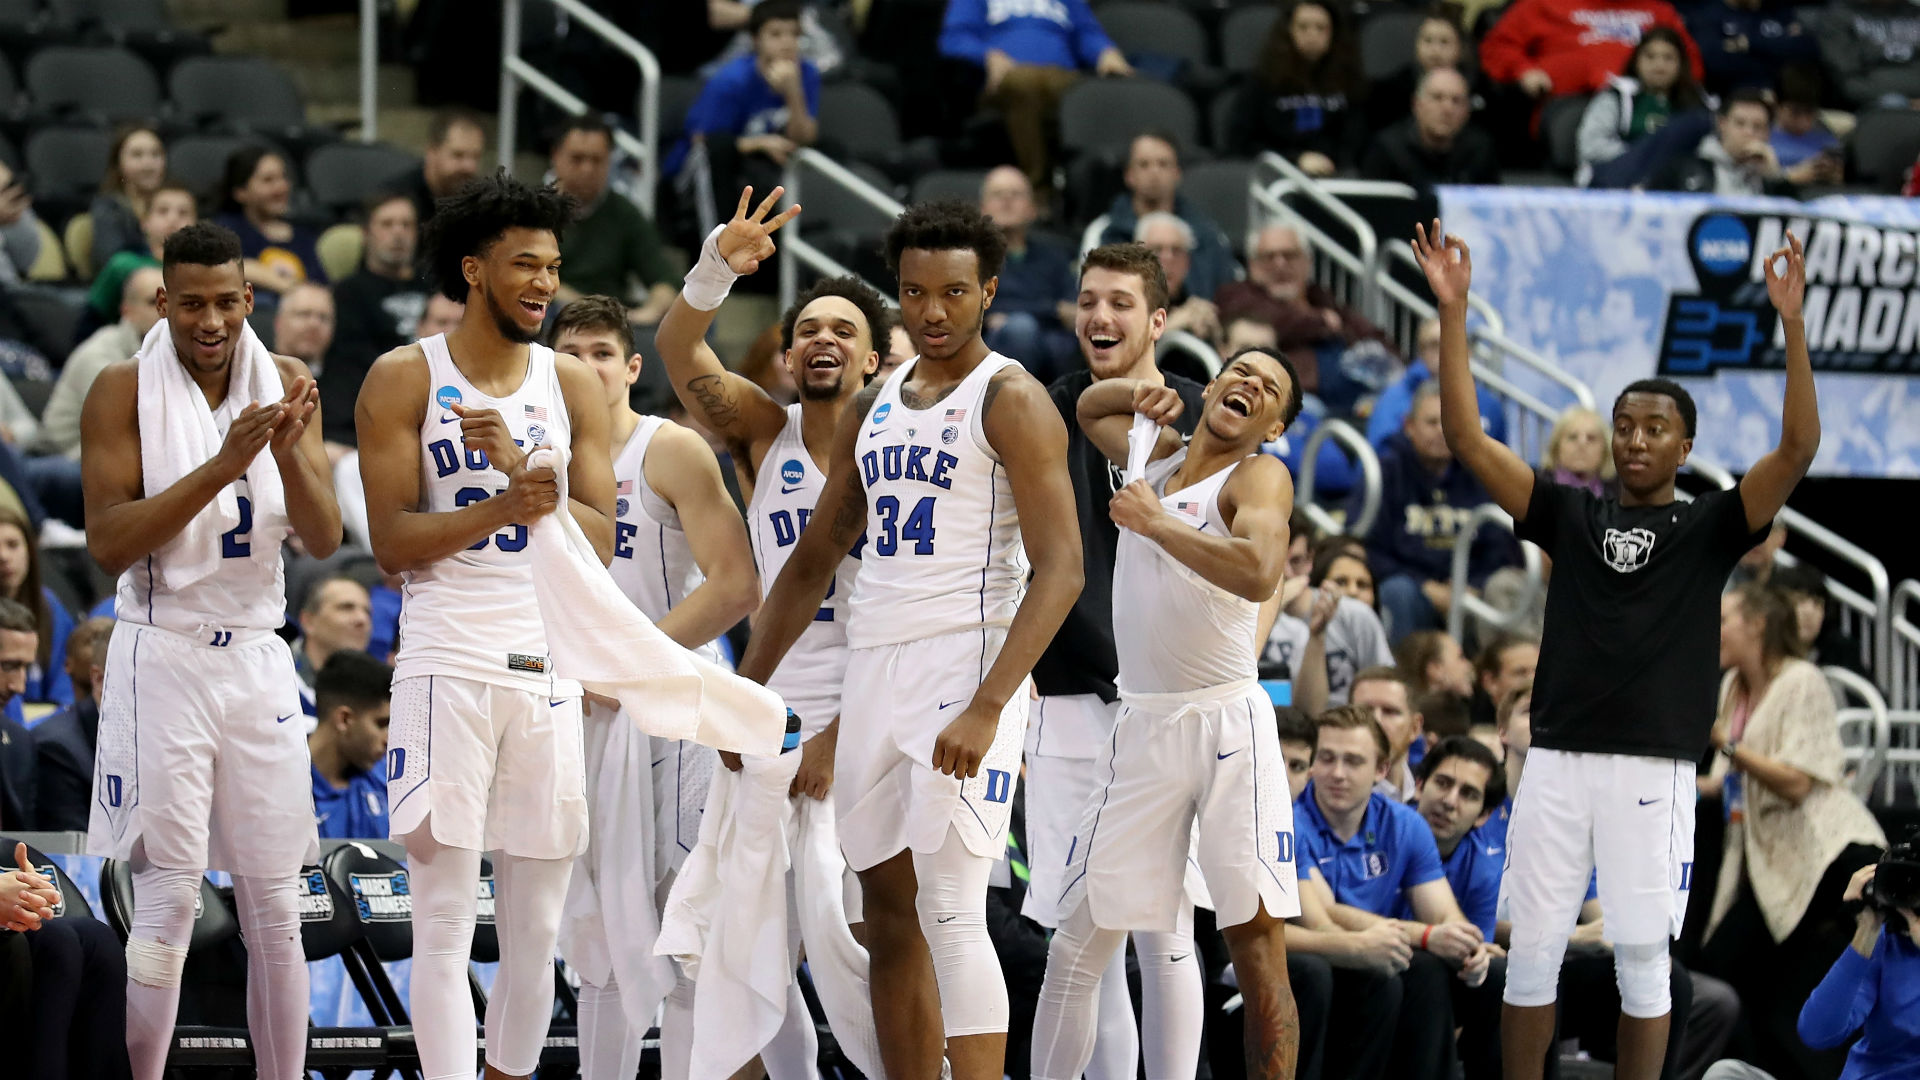 Duke Basketball: Scouting the Rhode Island Rams